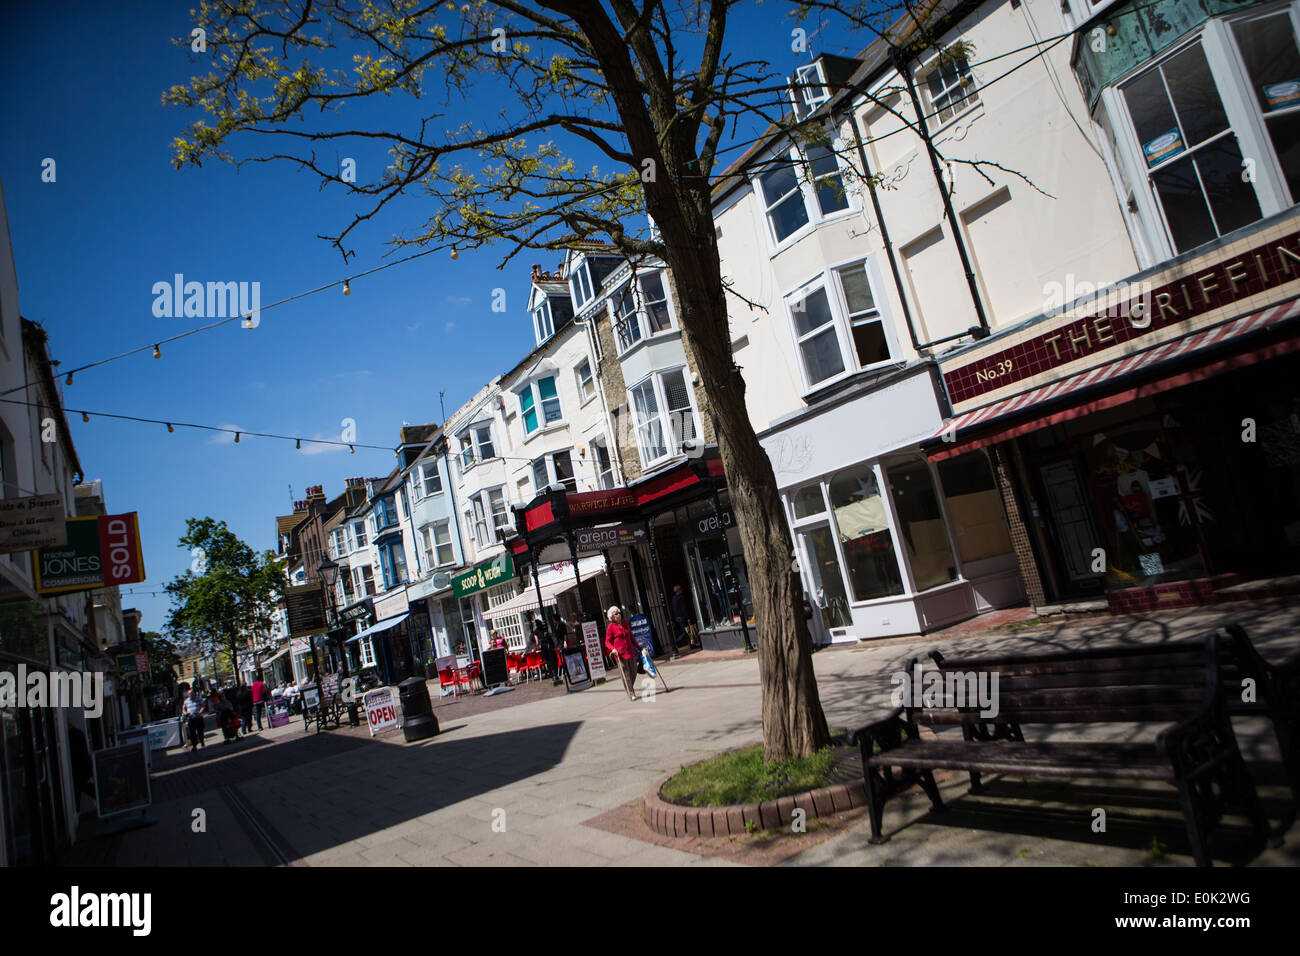 Warwick Street on a sunny day, Worthing, West Sussex, England - Stock Image